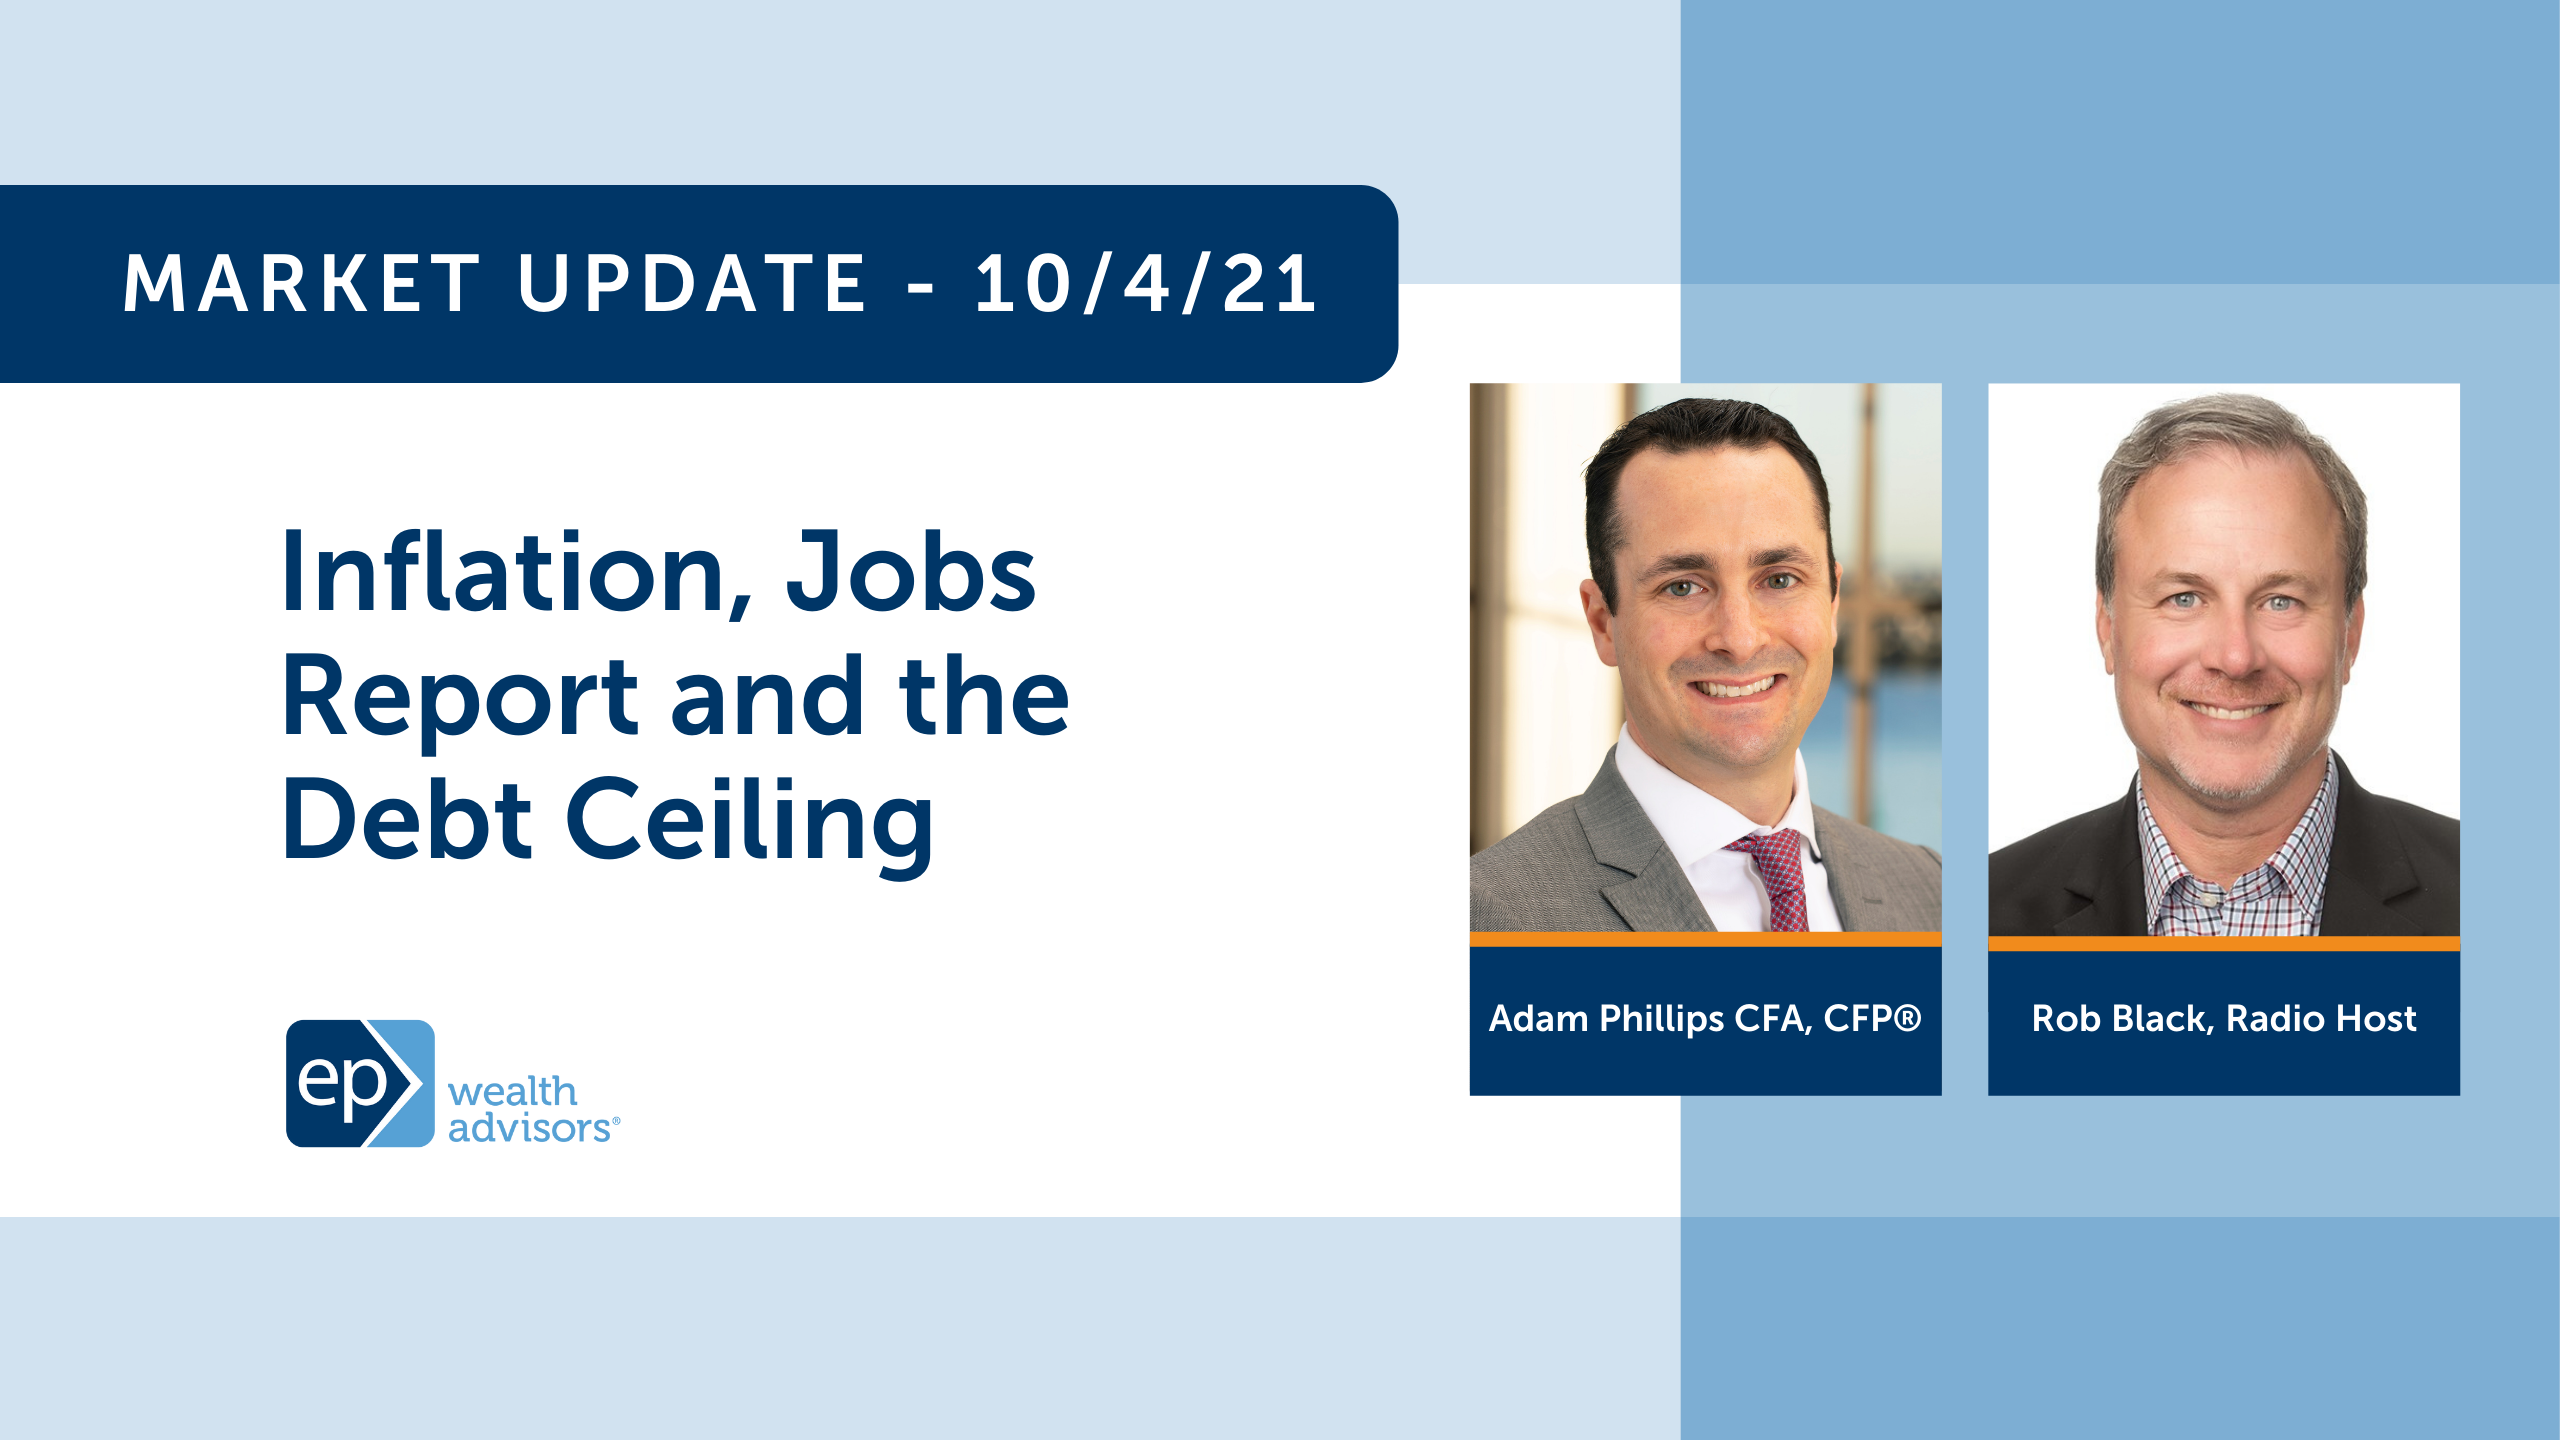 Inflation, Jobs Report and the Debt Ceiling | Market Update 10/4/21